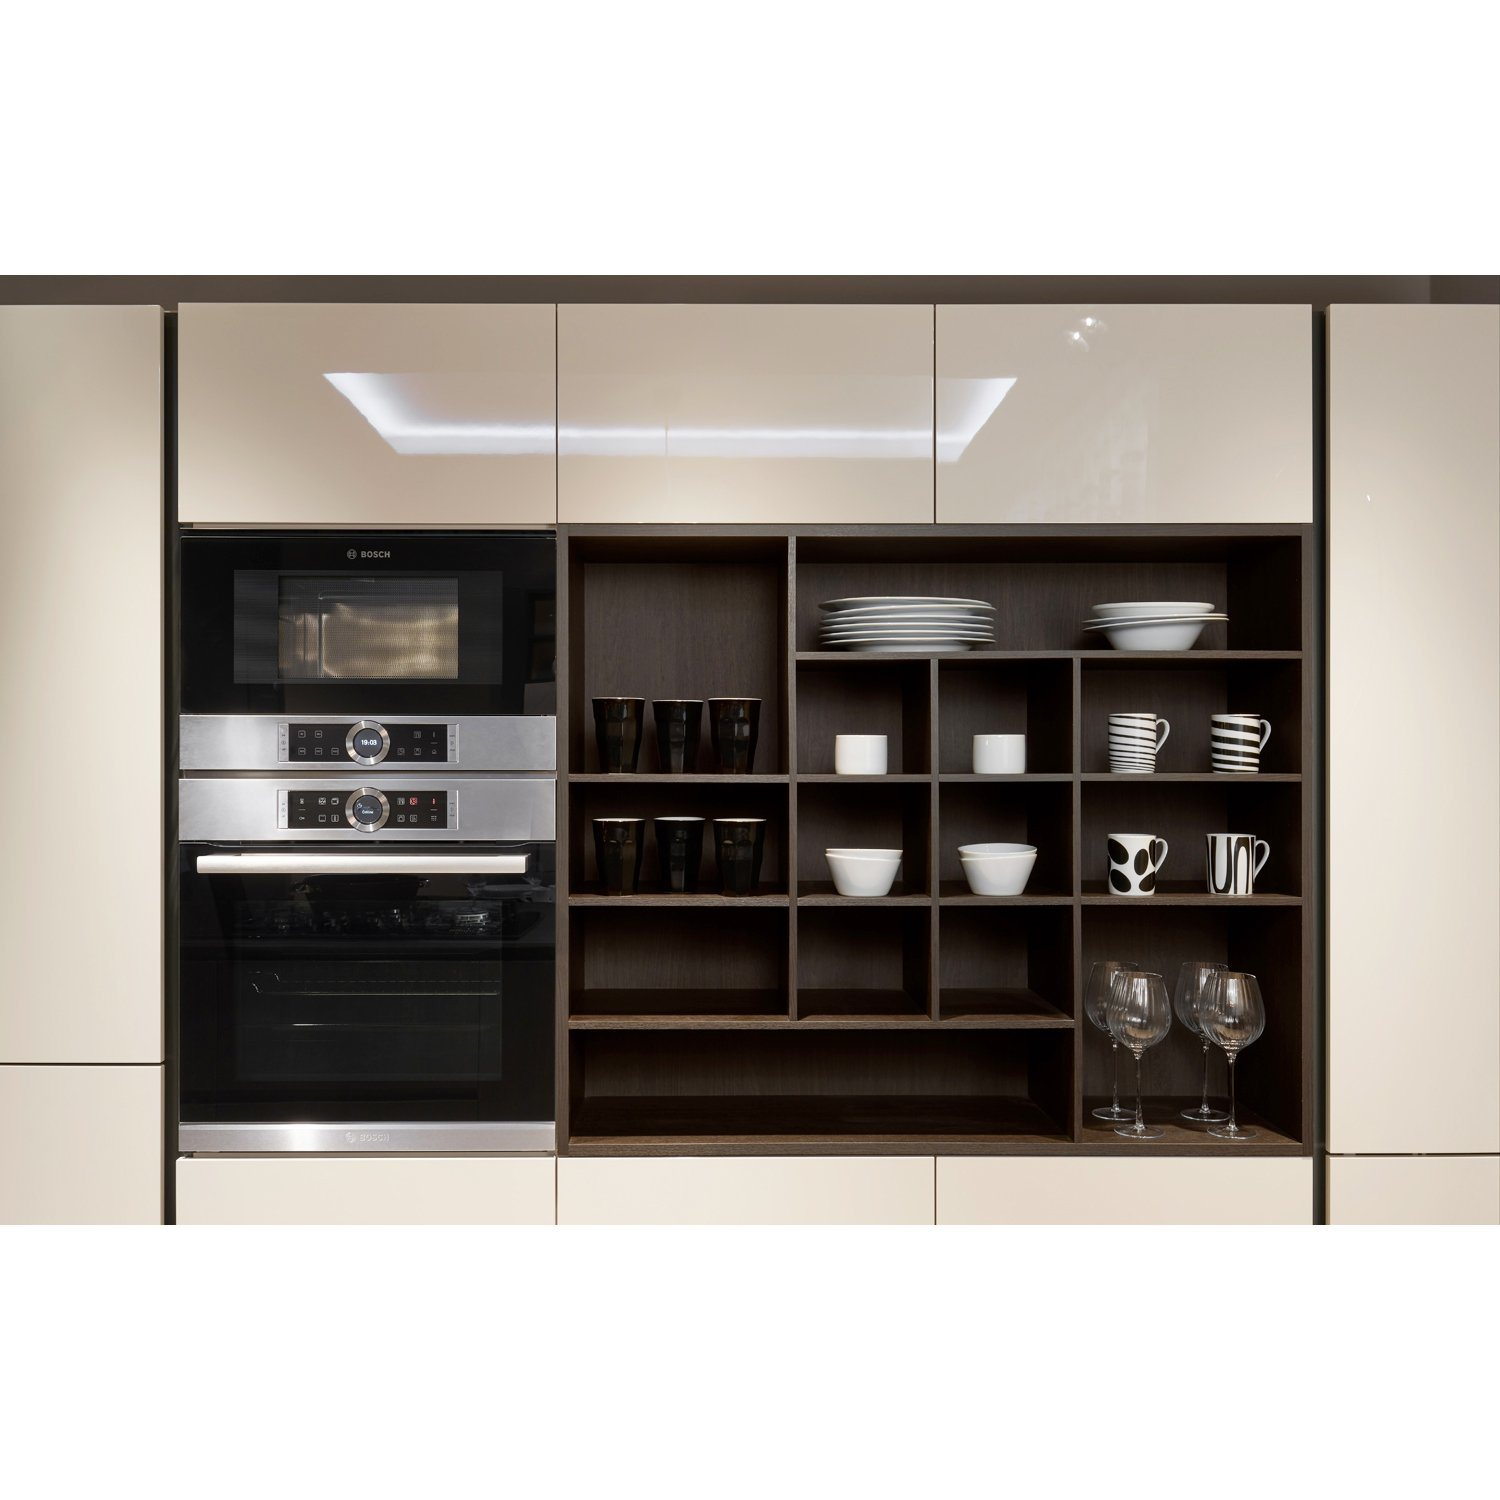 China Modern Style Full Set Furniture Pantry Cupboards White Small Cheap Kitchen Cabinet With Modern Interior New Free Design Photos Pictures Made In China Com